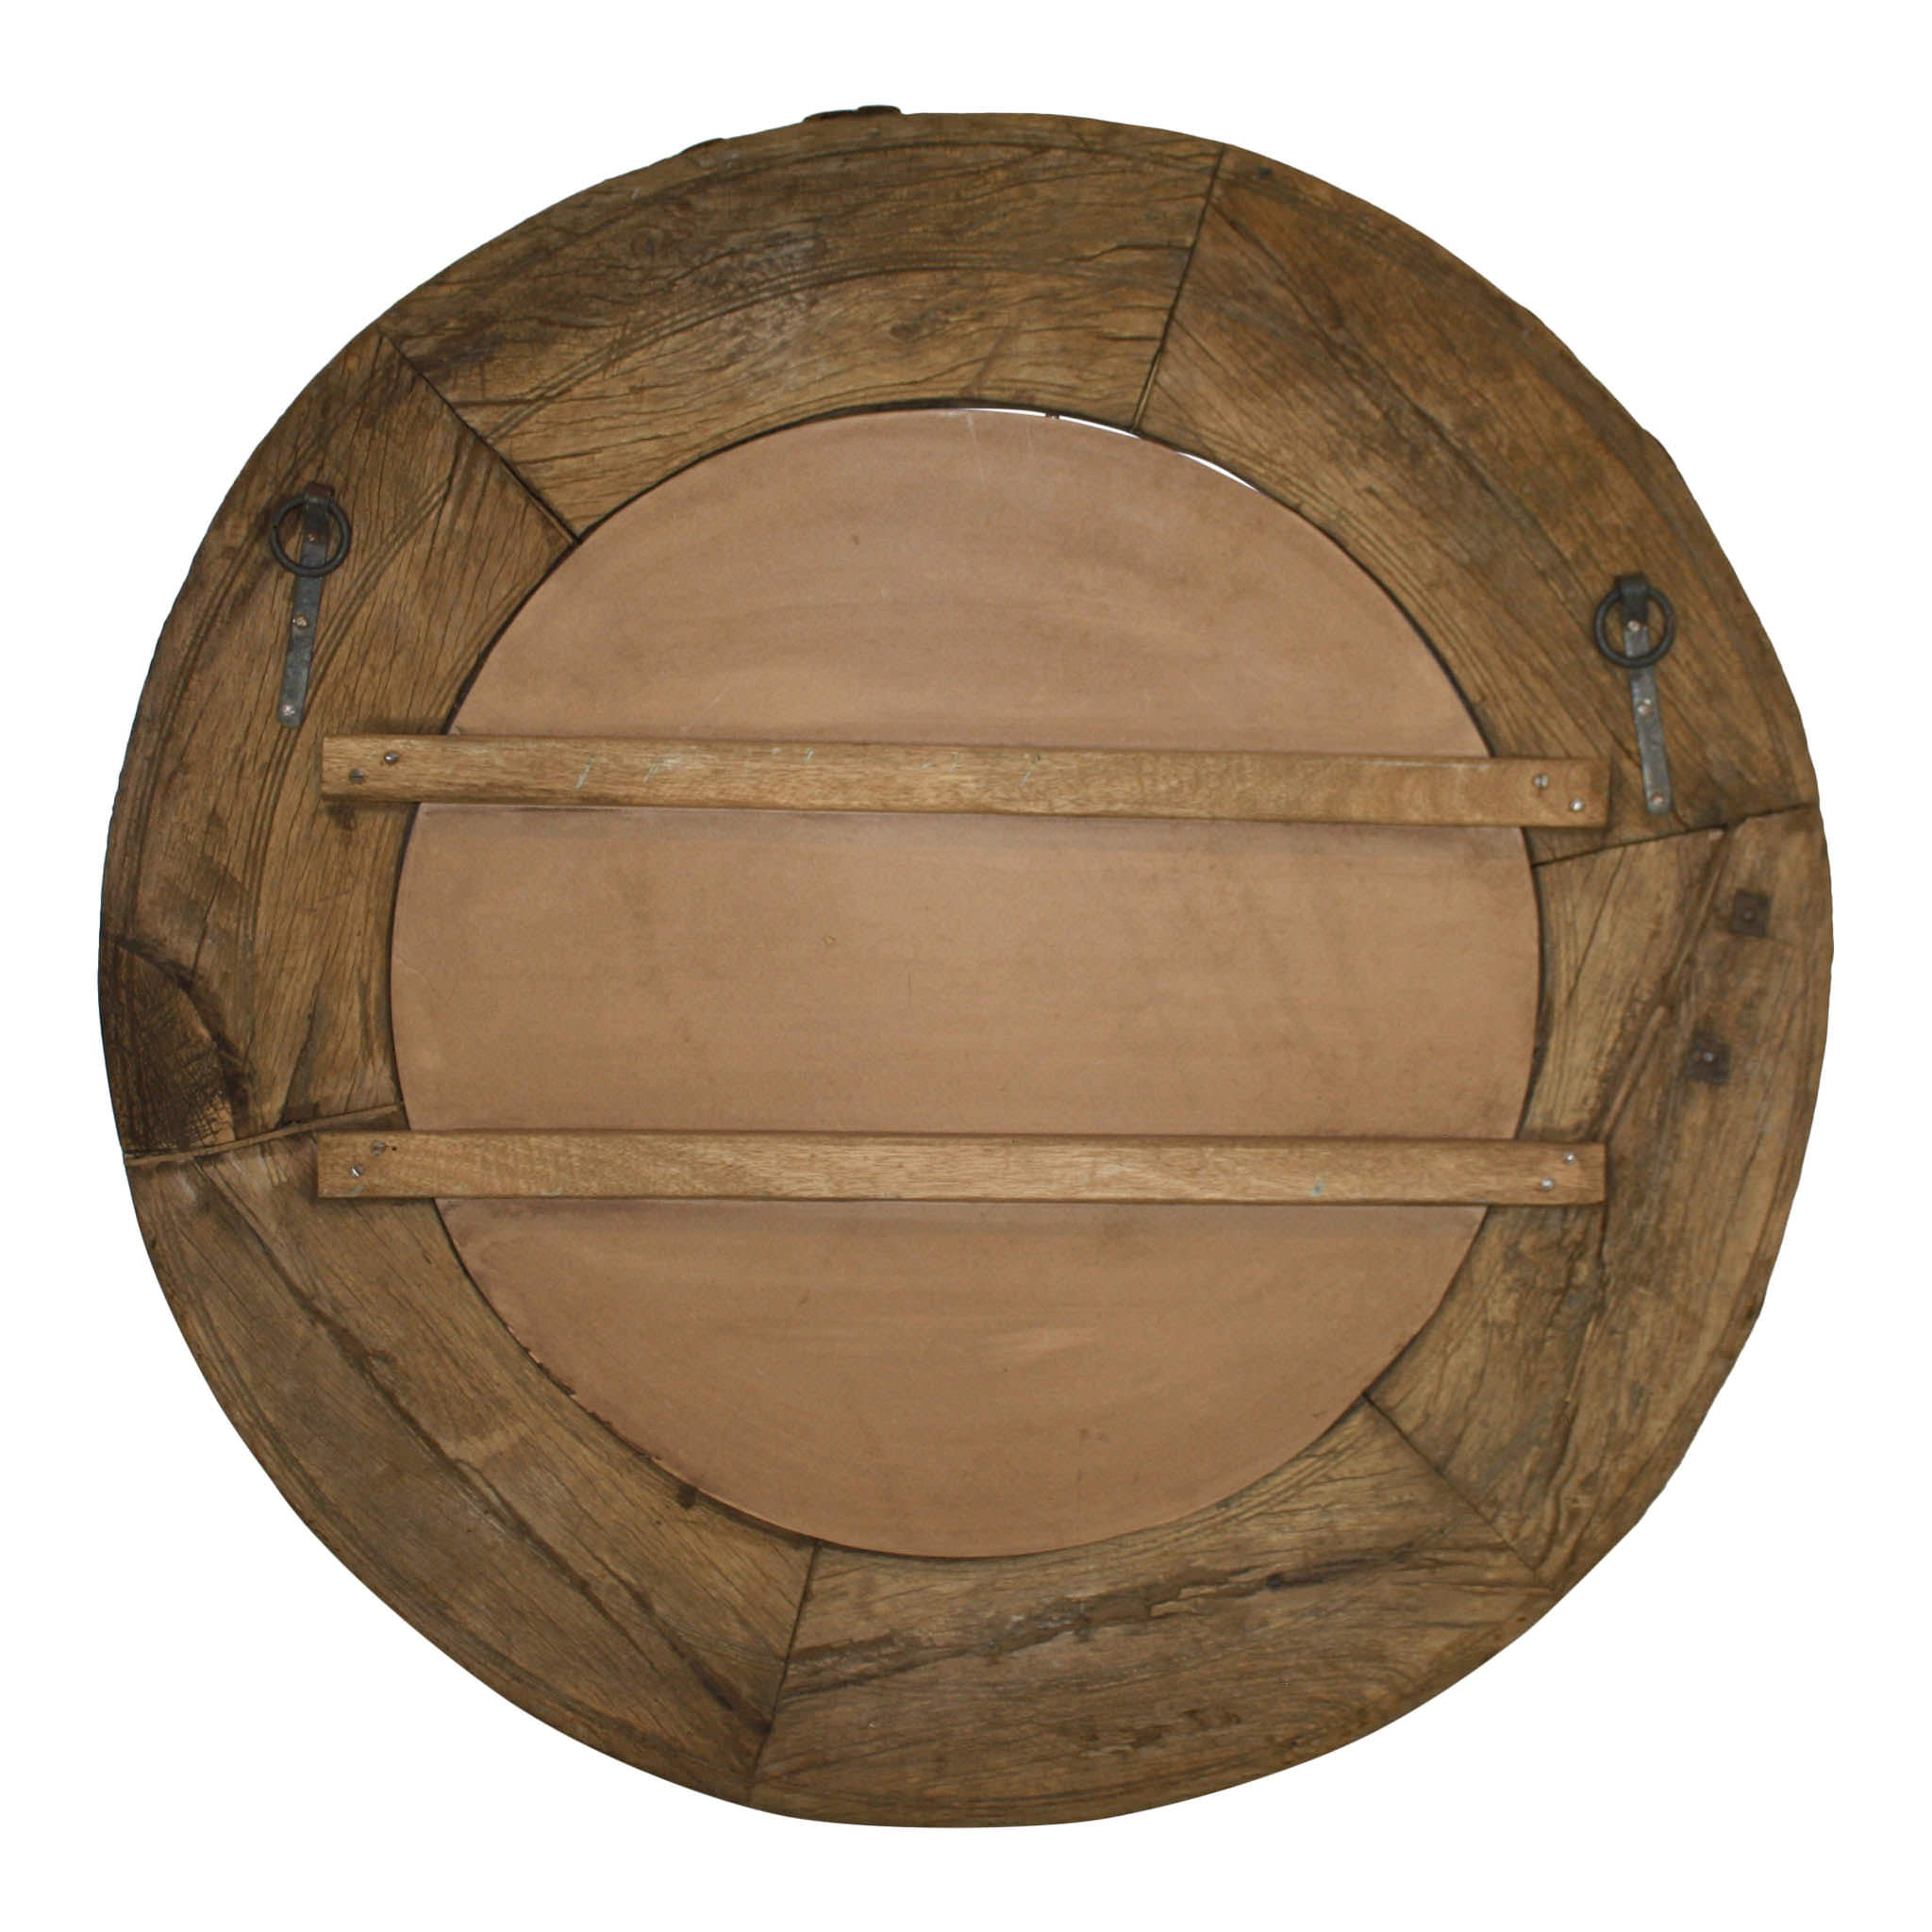 ... Round Mirror With Rustic Wood Frame ...